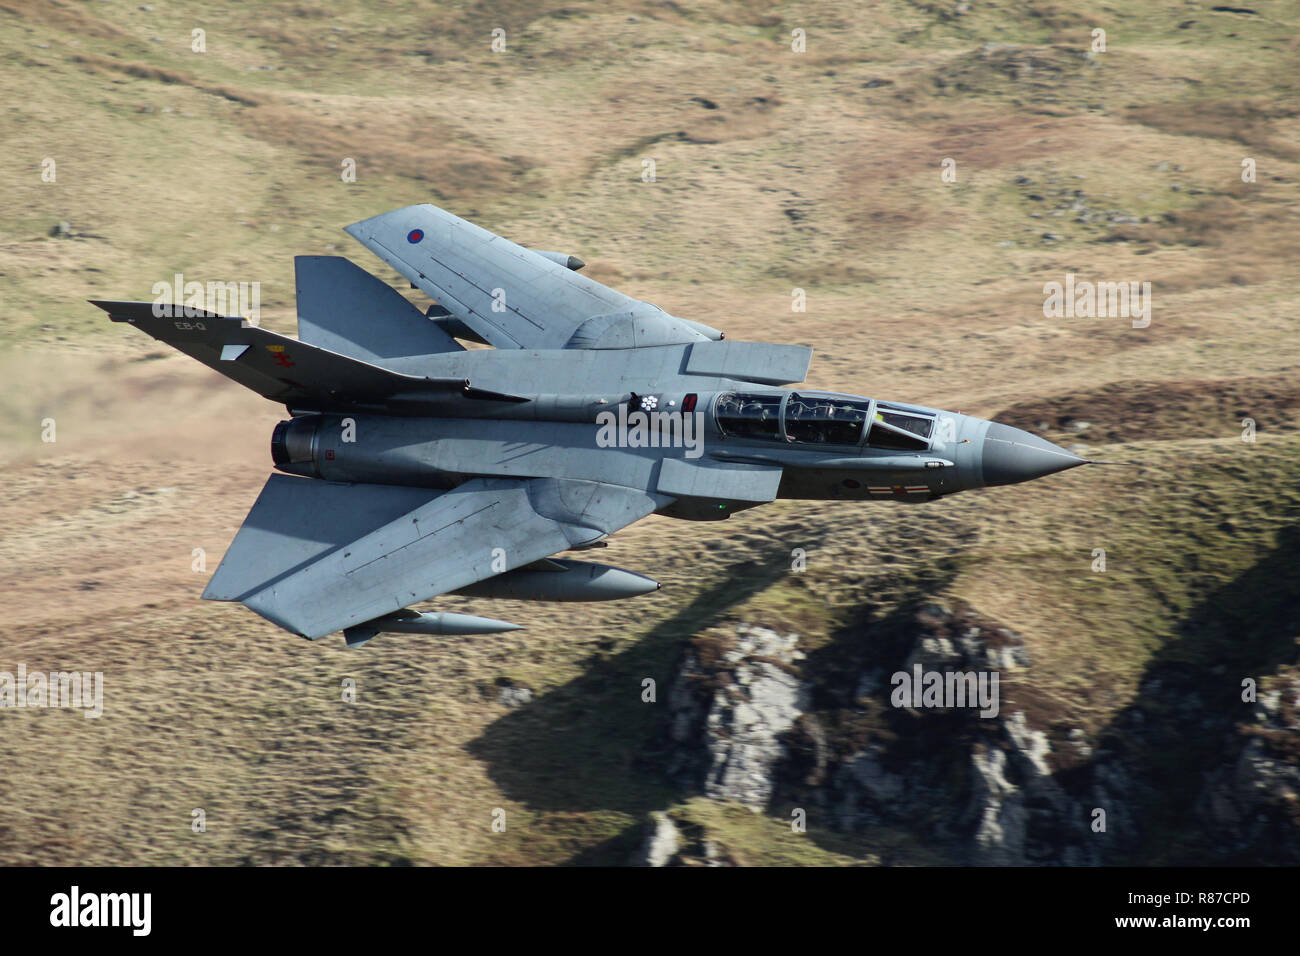 RAF Tornado GR4, of 41 Squadron, on a low level training flight in the mach loop area of Gwynedd, Wales, United Kingdom. - Stock Image